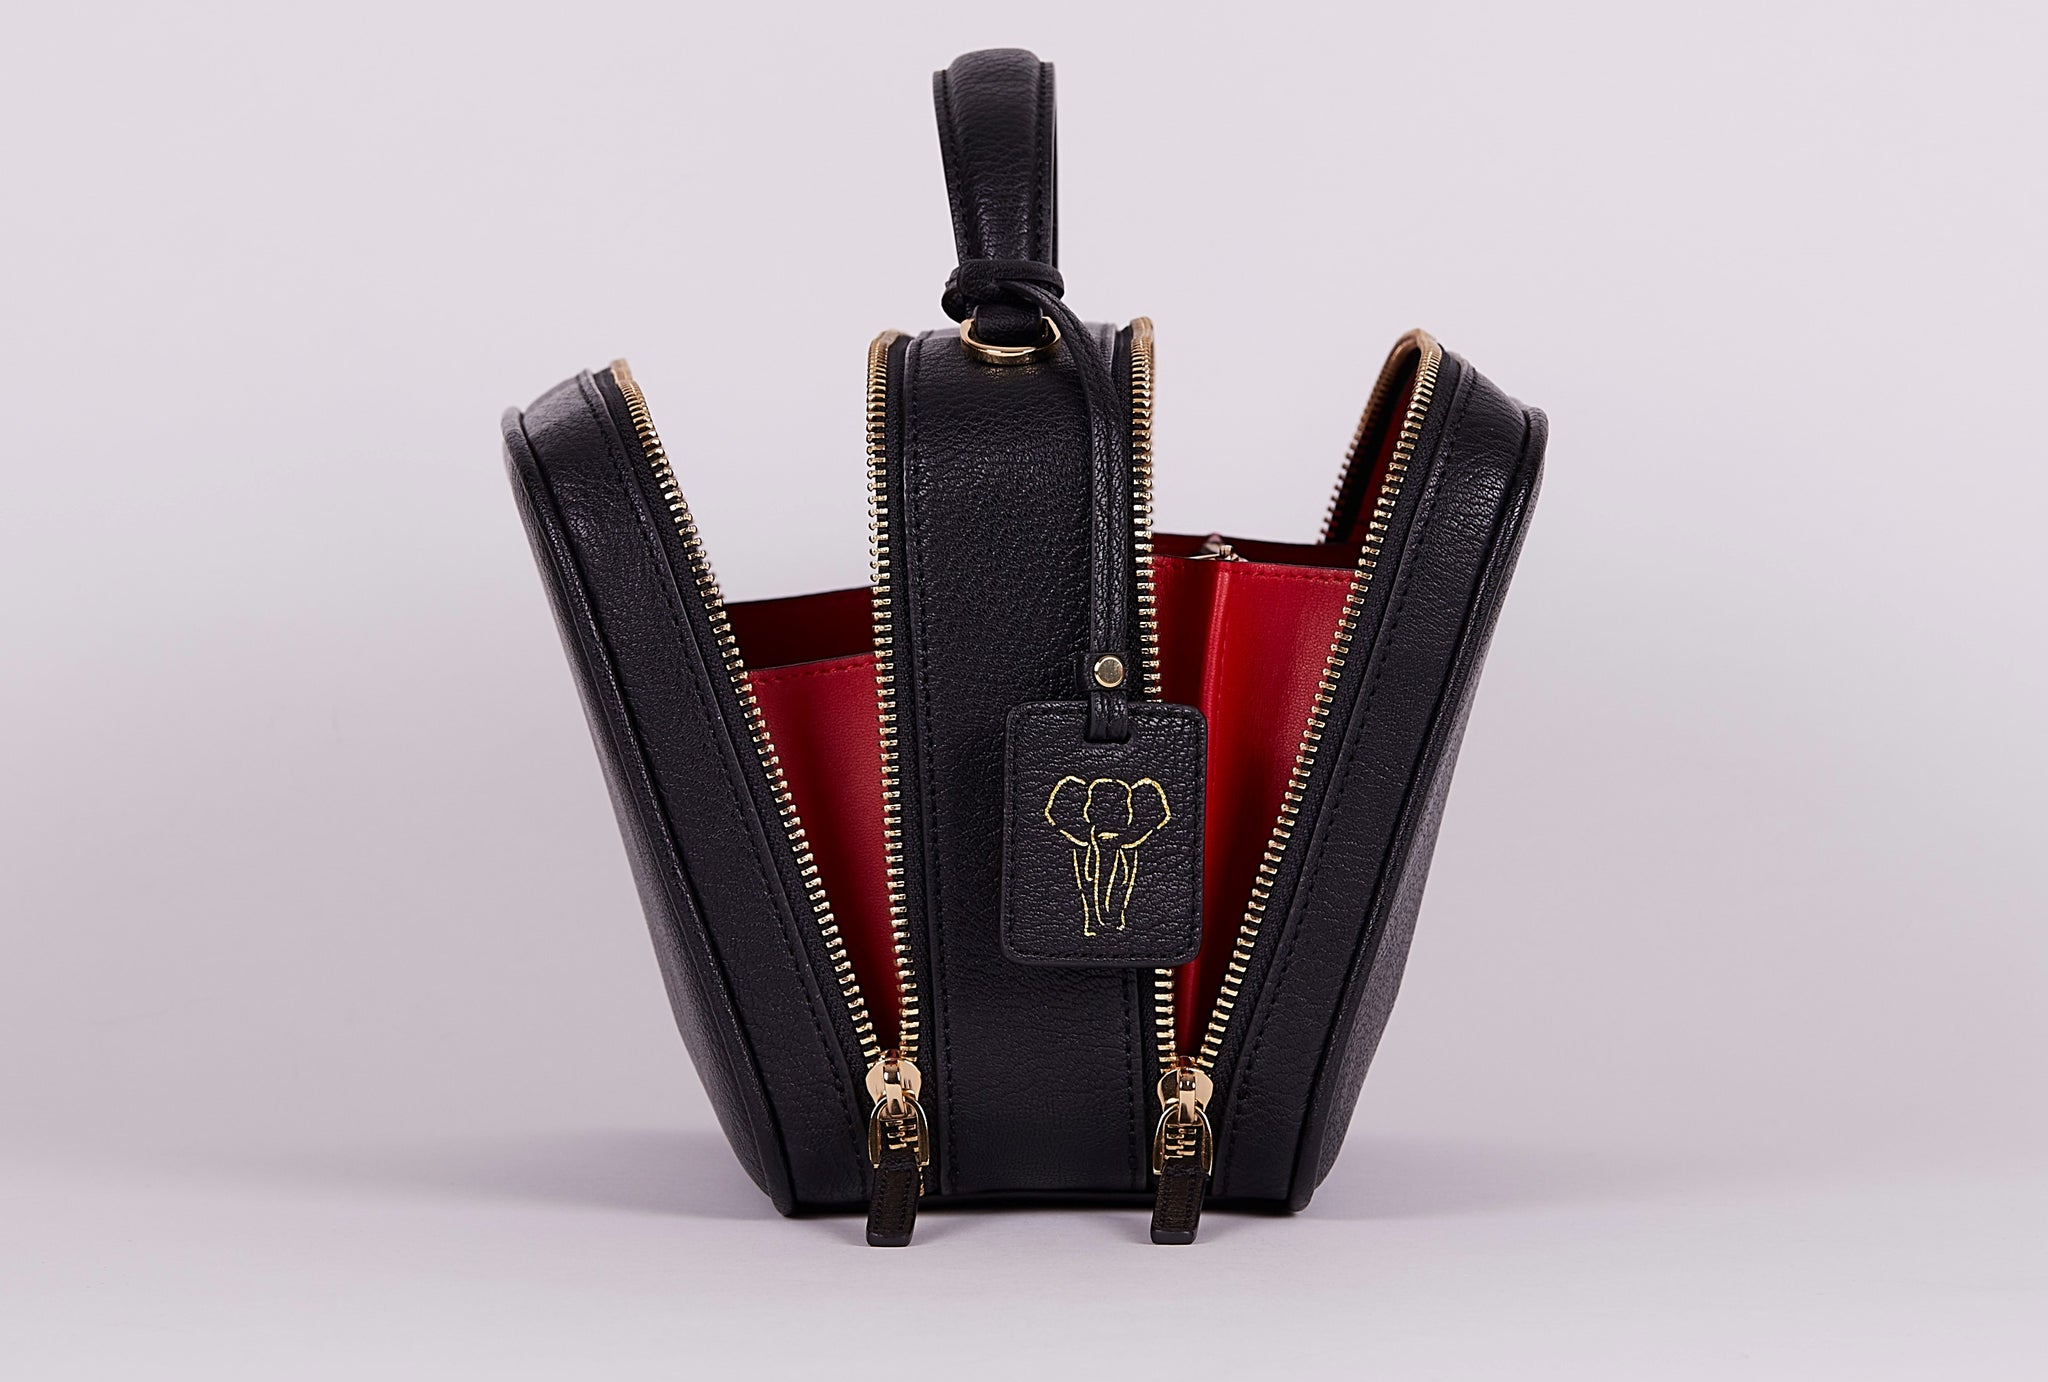 FERRON Vegan Signature Crossbody bag in black with an elephant logo tag